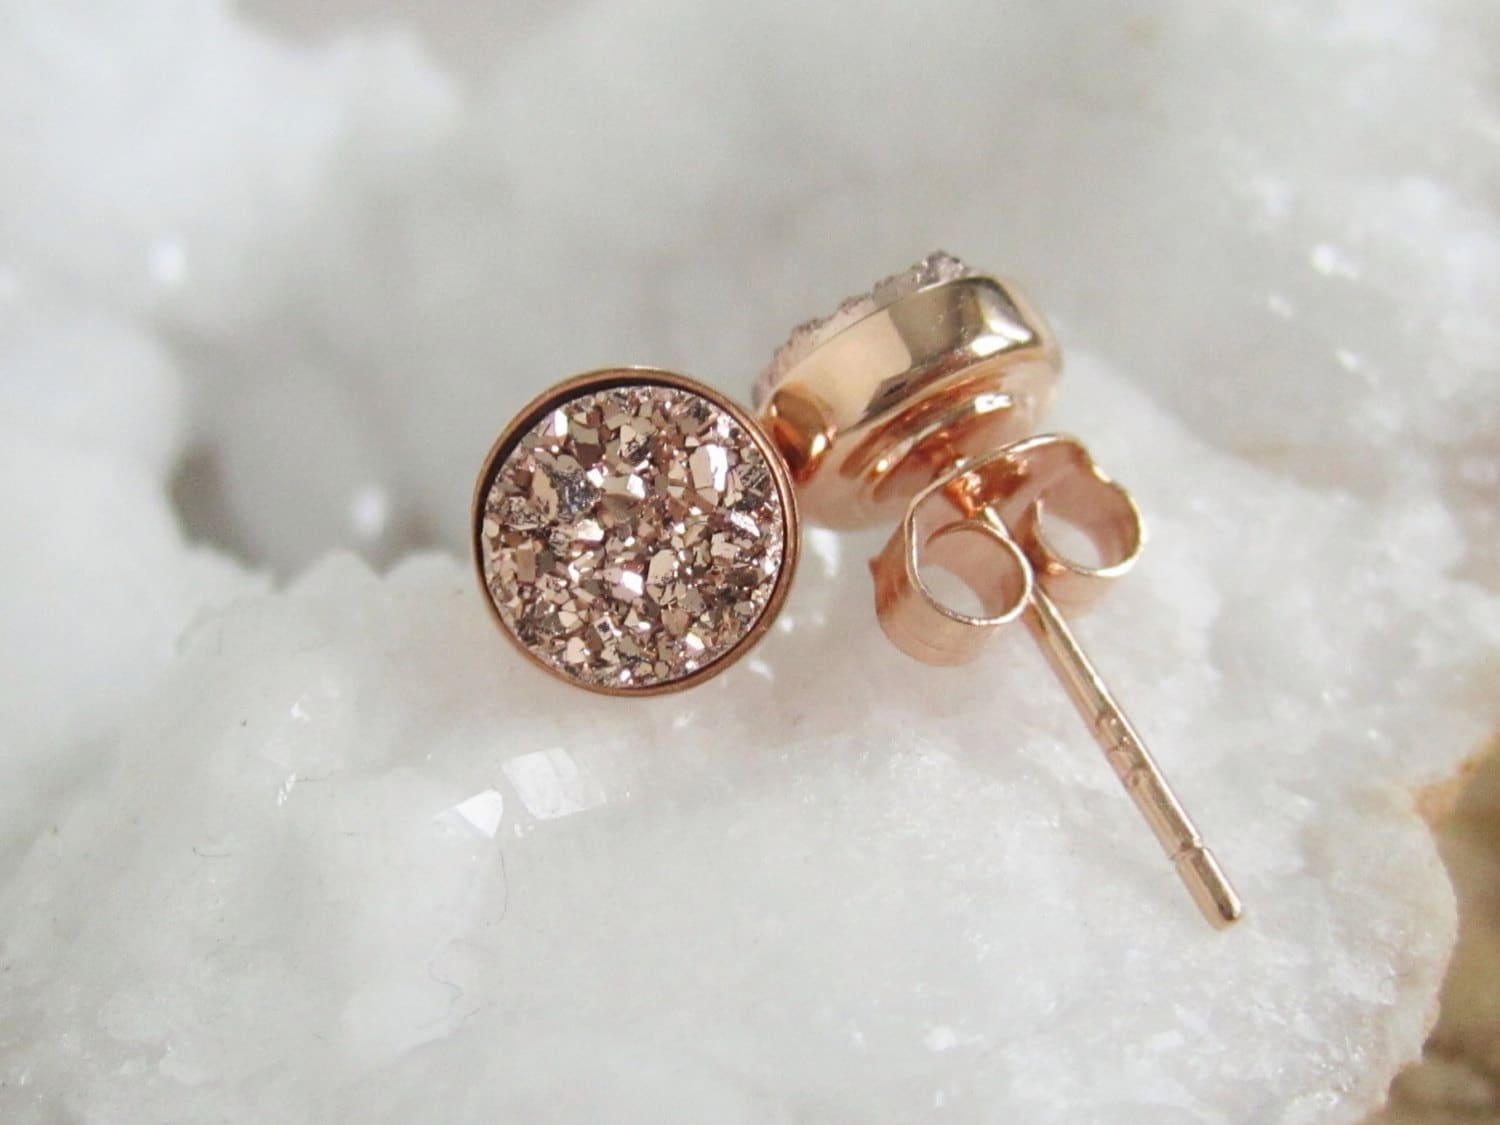 2b52d5679 Druzy Earrings Druzy Earrings Studs Stud Earrings Rose Gold | Etsy